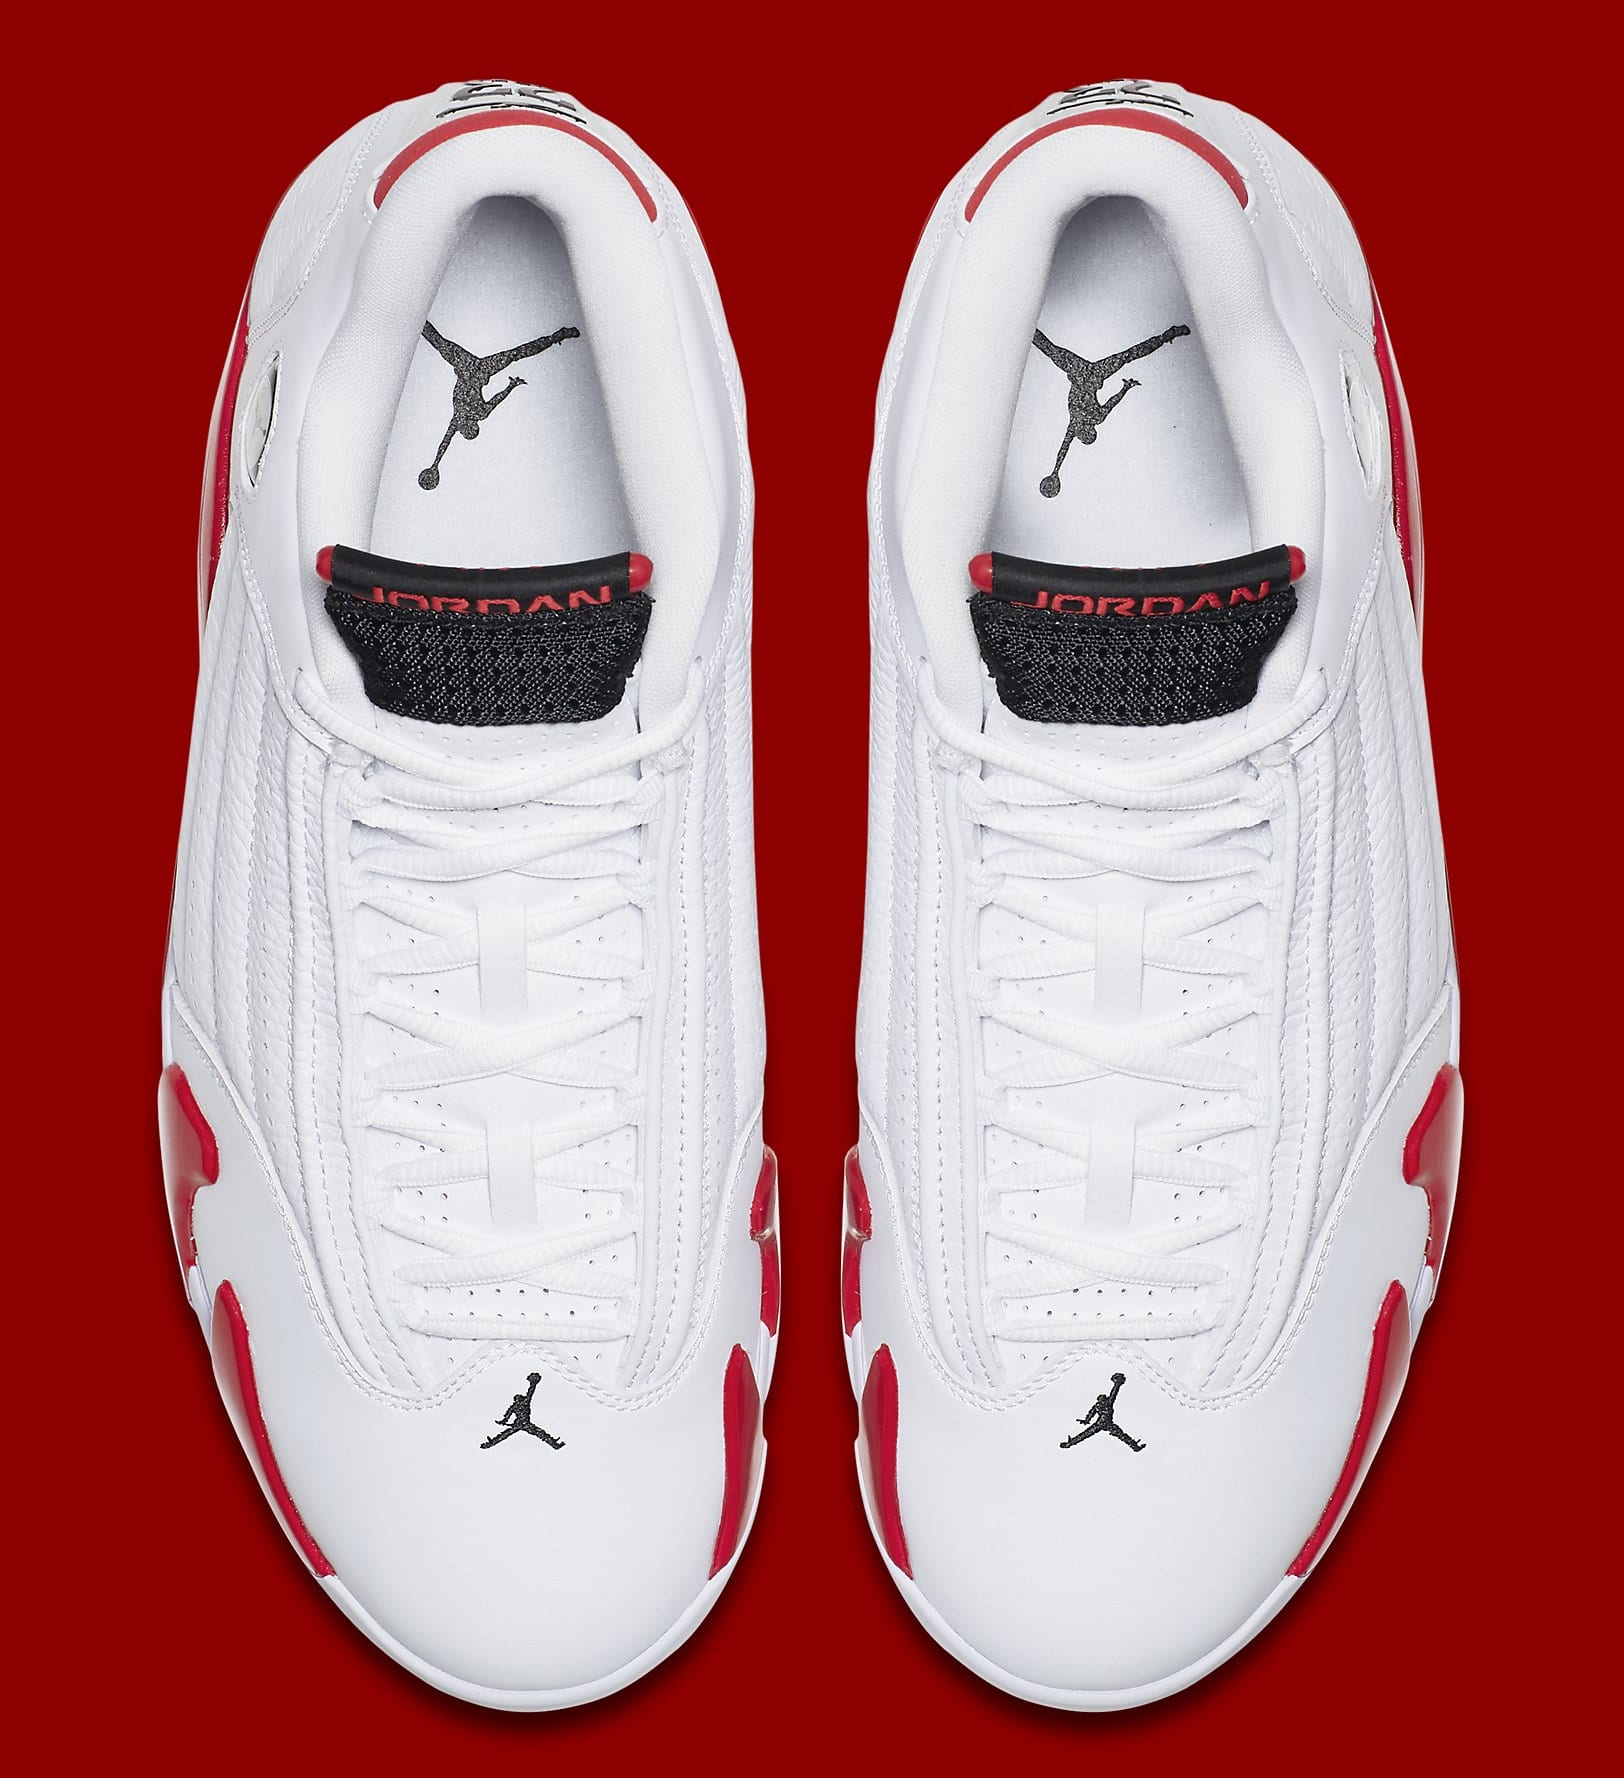 timeless design 5371c 2fb5c Image via Nike Air Jordan 14 Retro  Candy Cane 2019  487471-100 Top